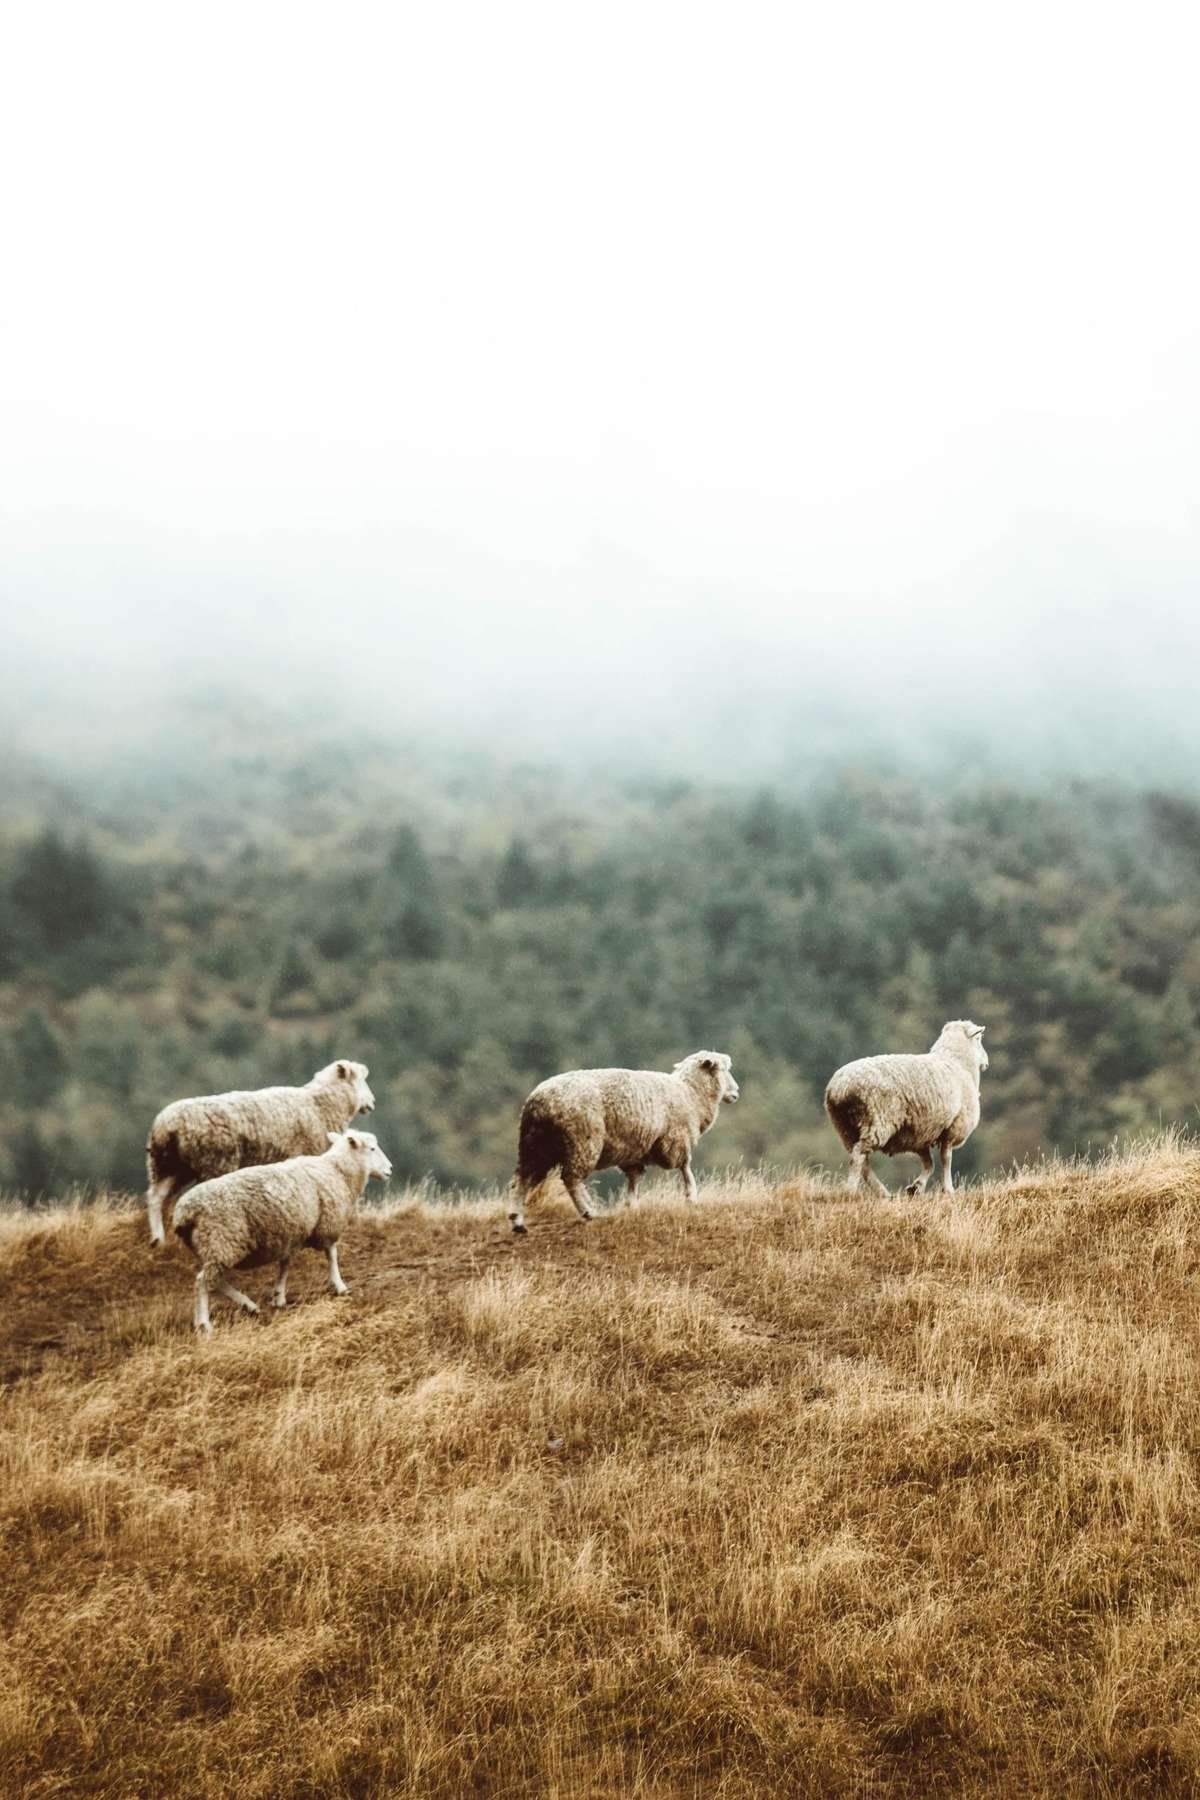 herd of merino sheep, photo by Taylor Brandon.